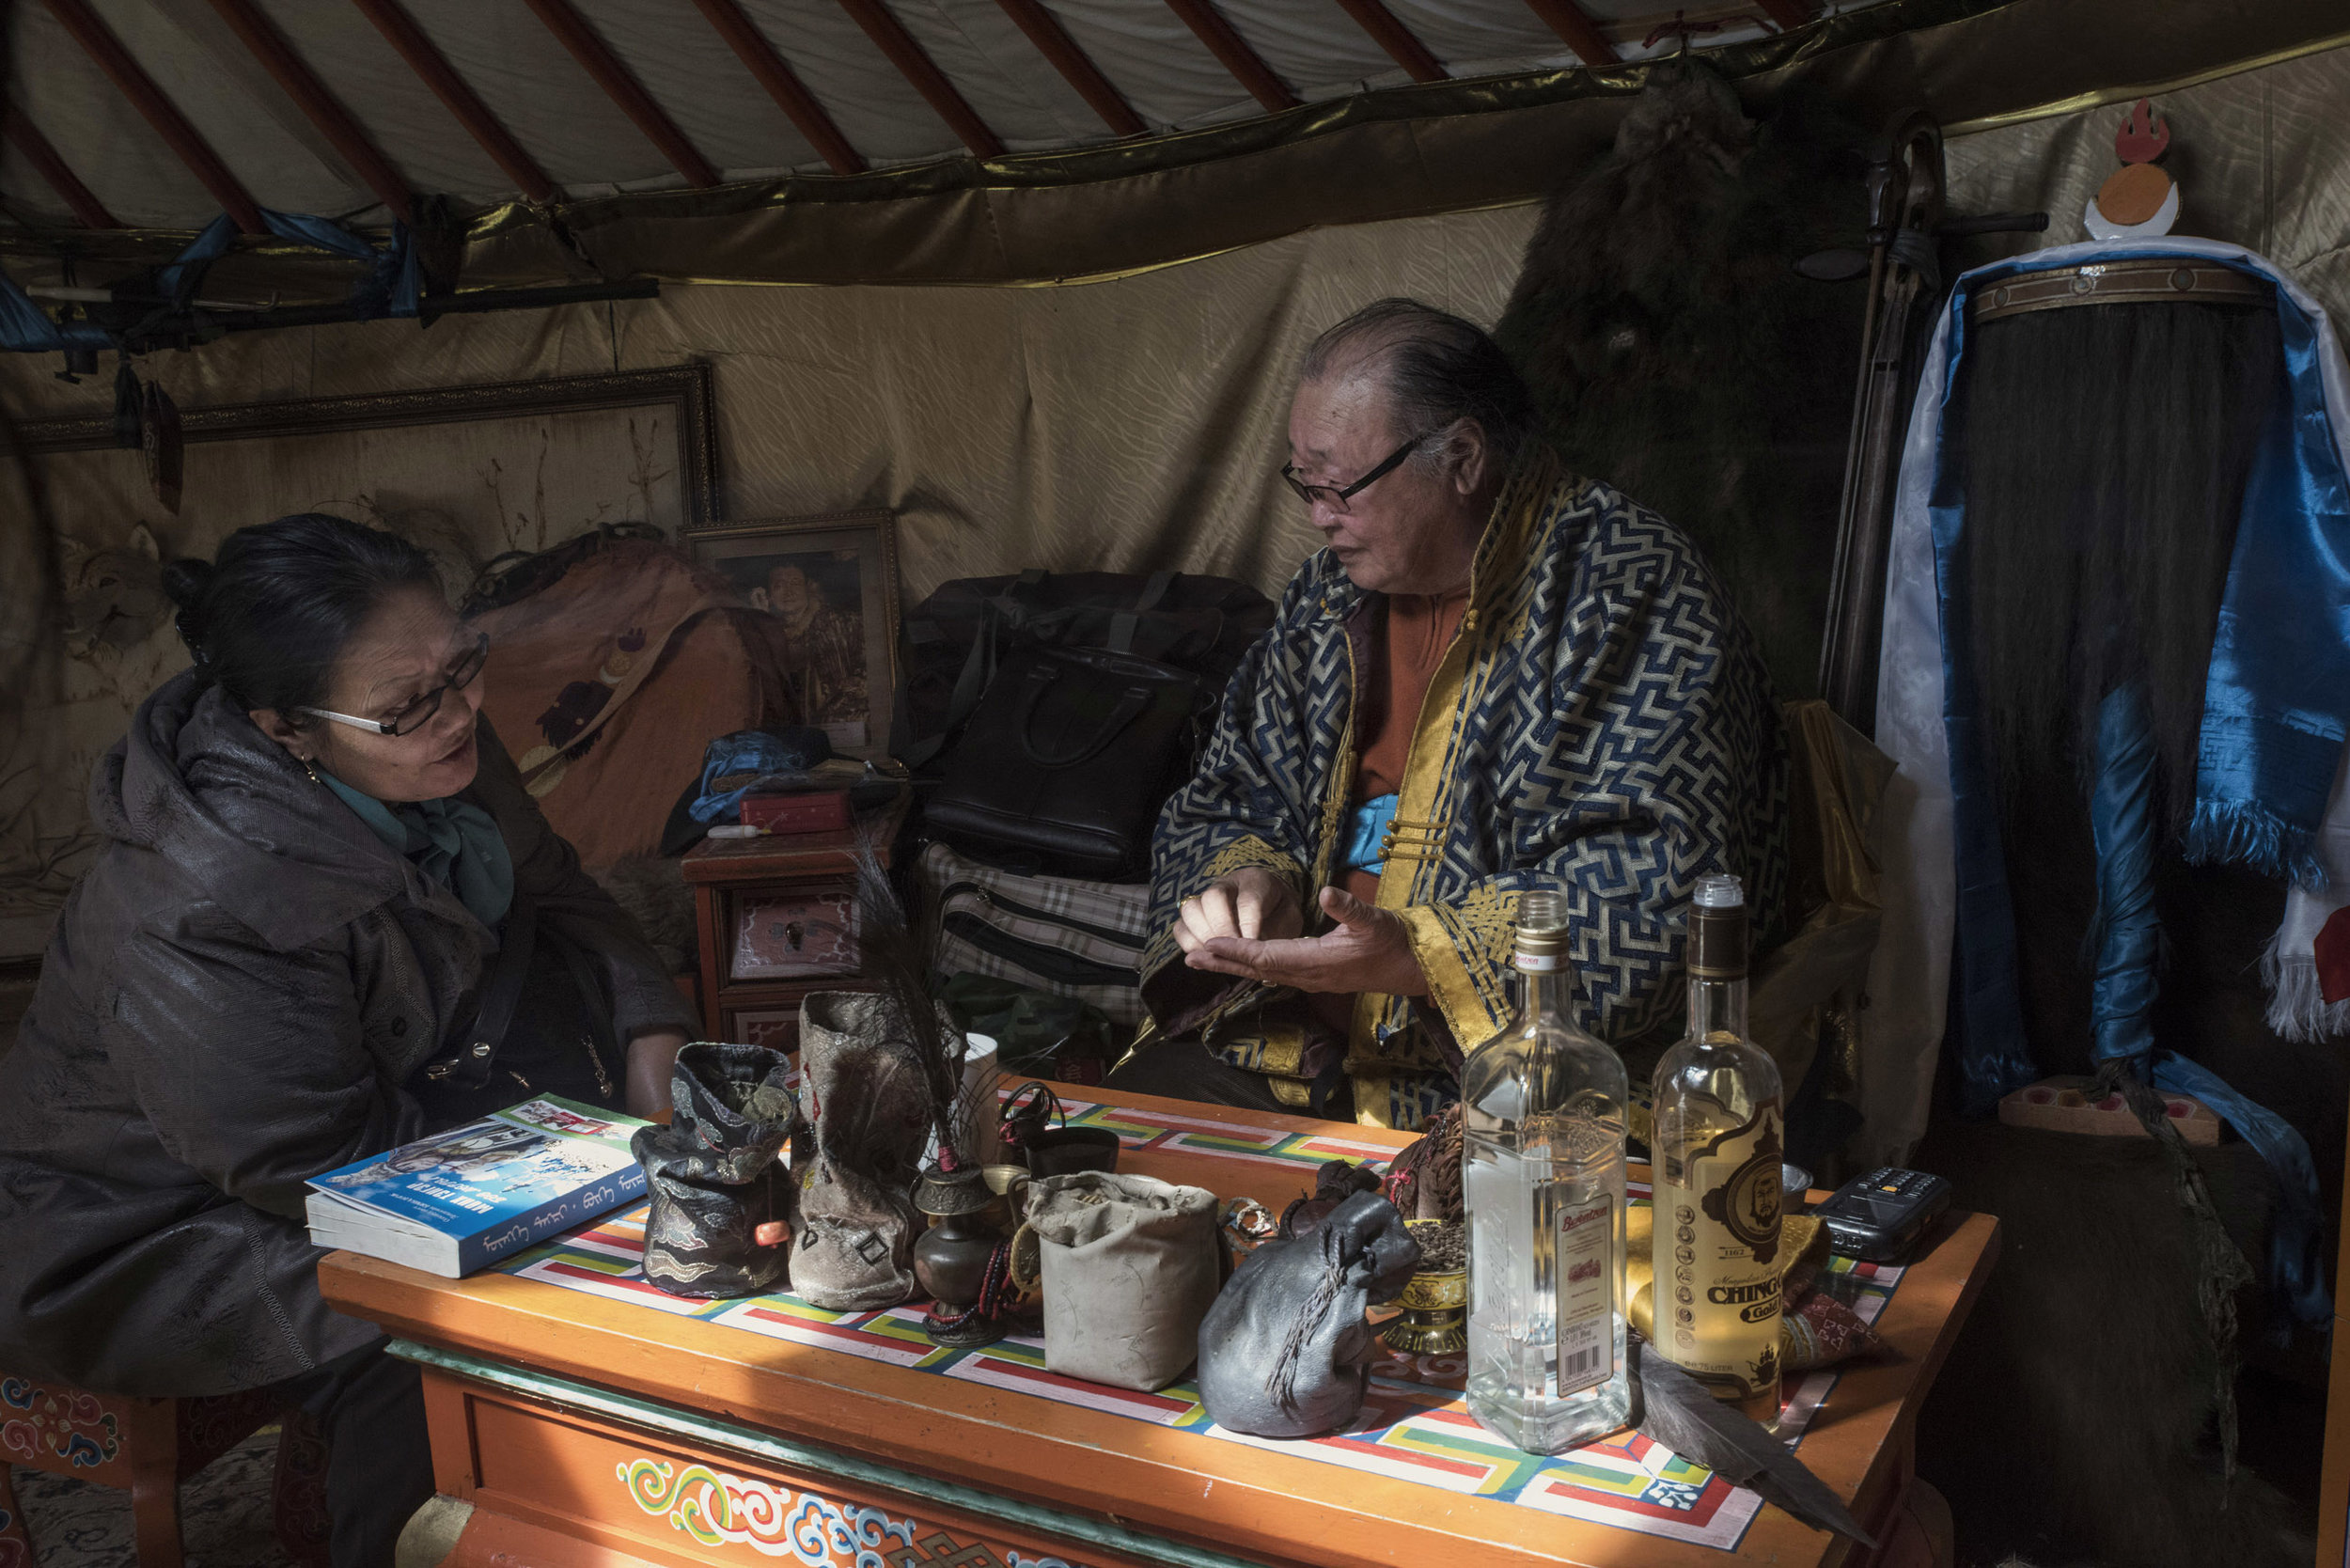 A woman visiting master shaman Byambadorj for his healing powers. When connected with their spirit shamans are believed to possess a wide-ranging array of powers, from curing health problems, to removing or casting curses, including fortune telling. These services can be a good source of income for shamans although many claim they are not paid for it.